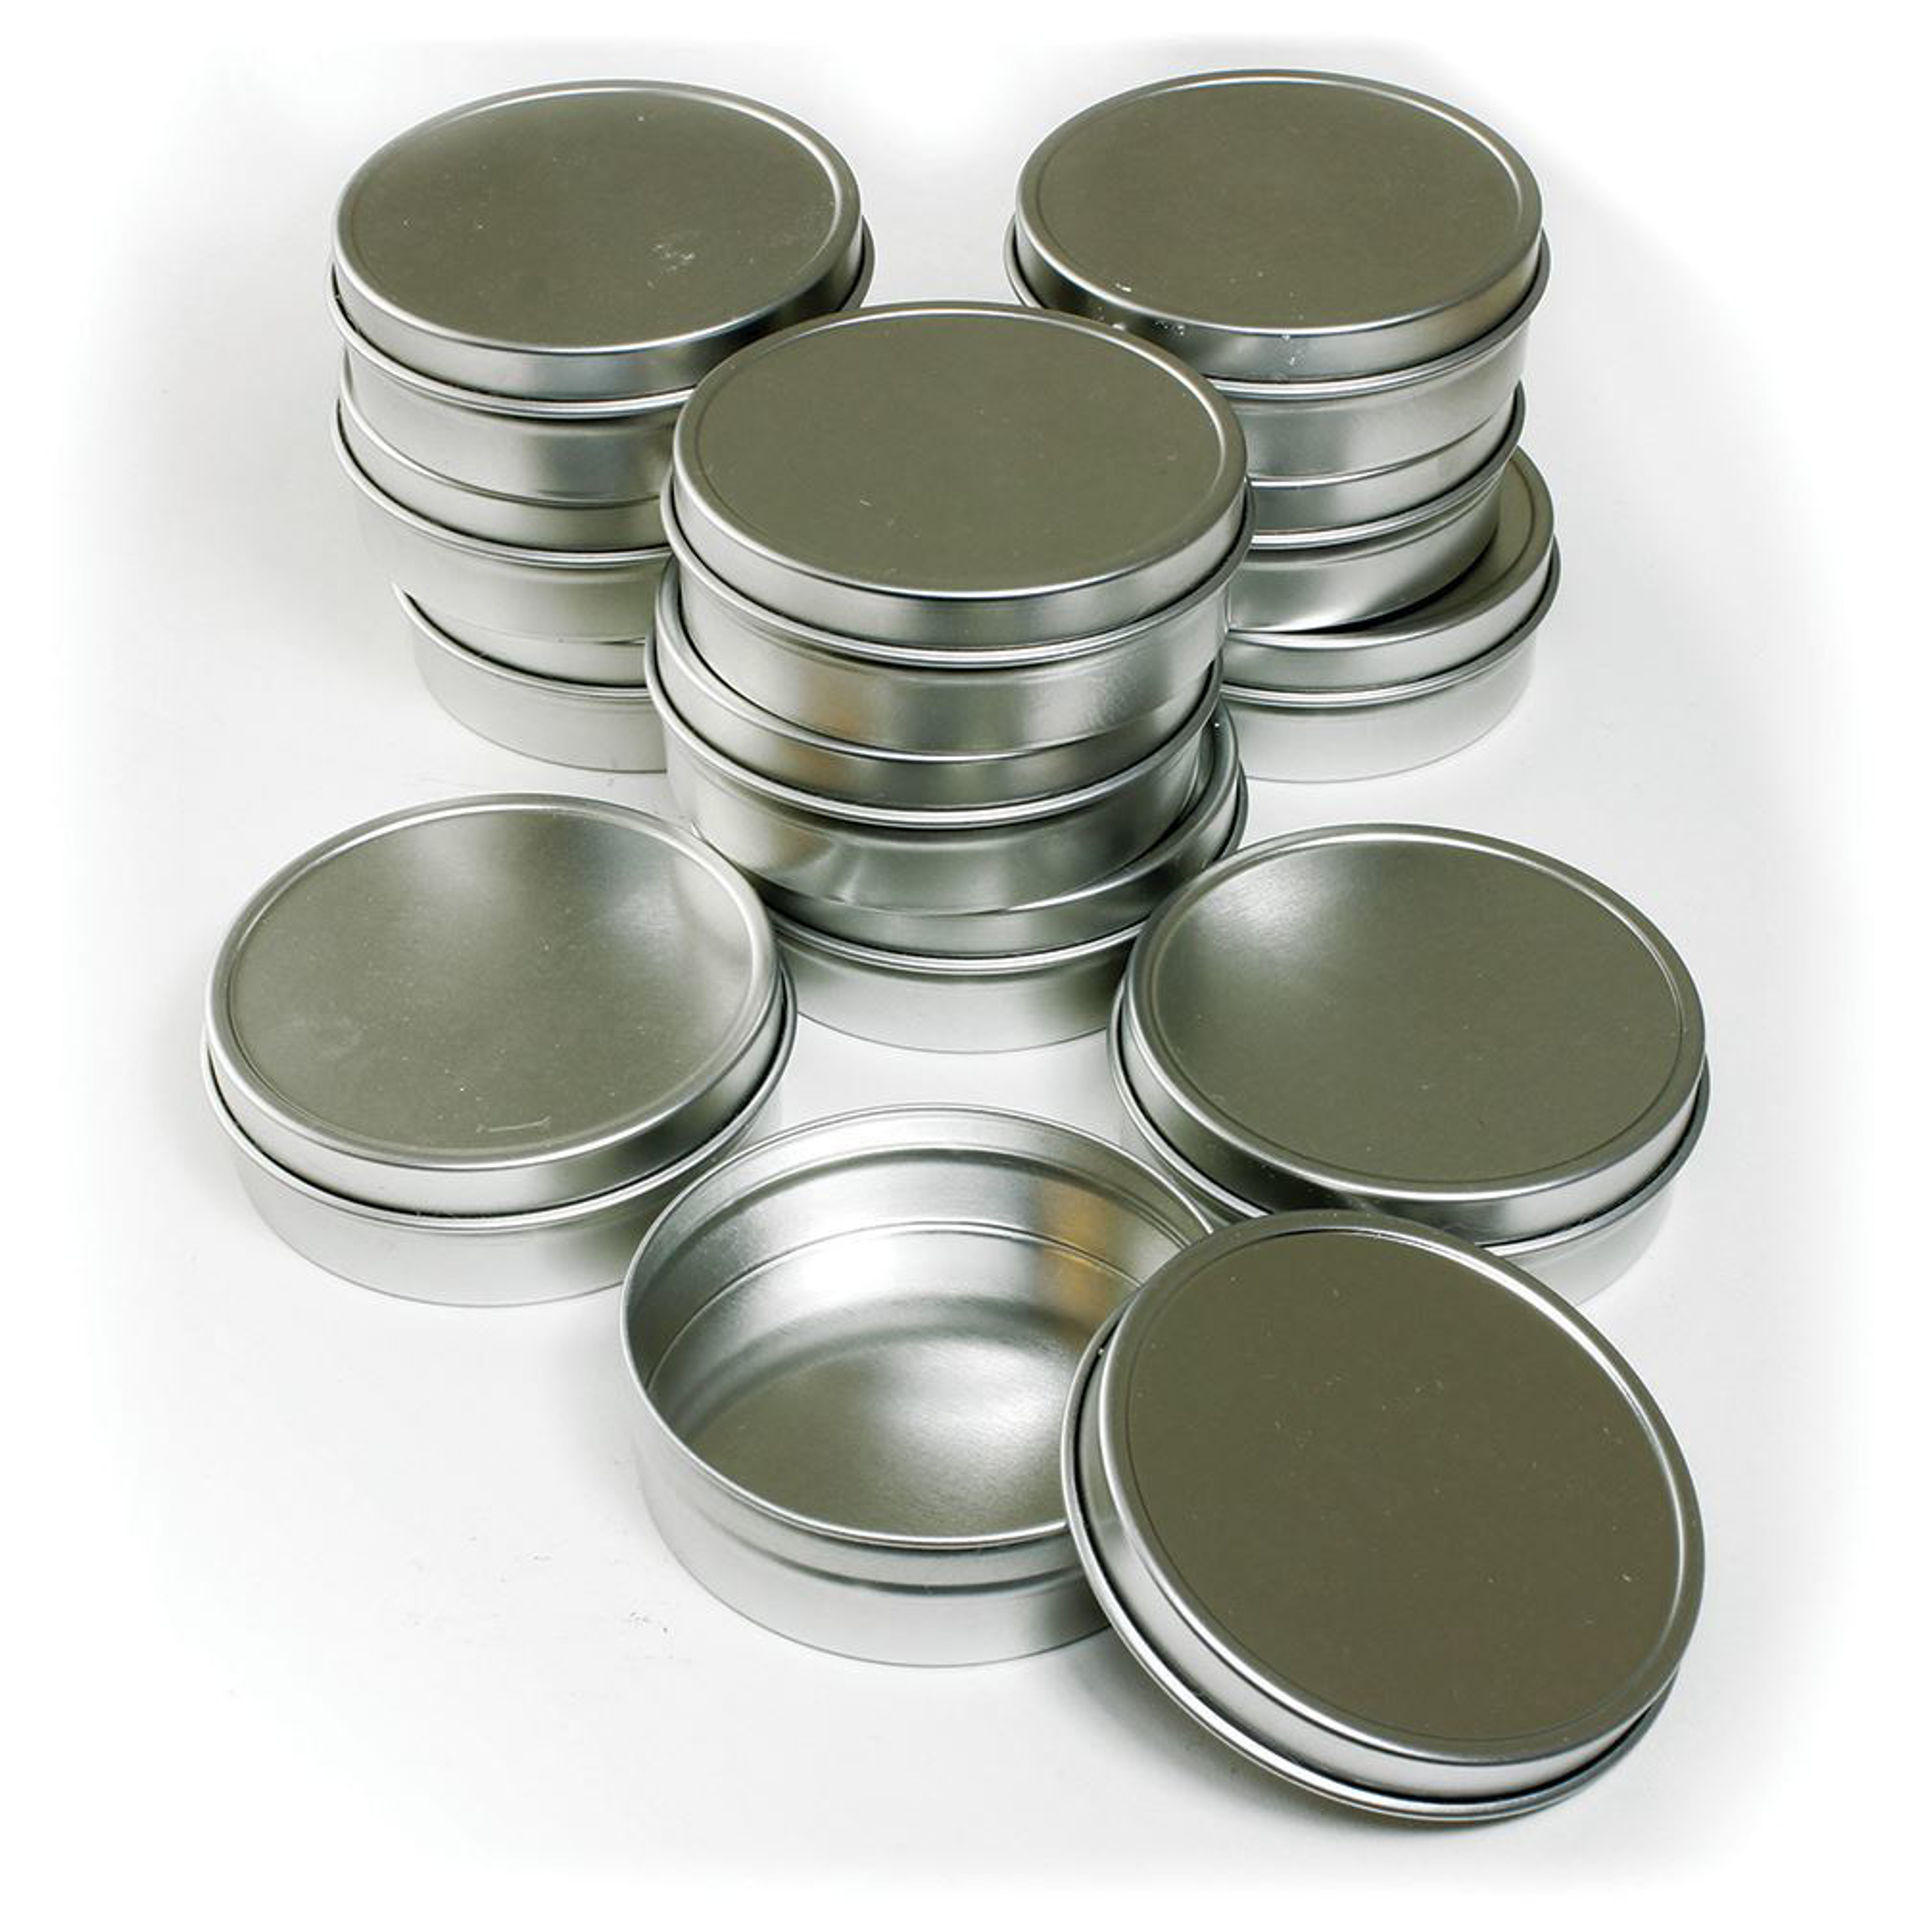 Picture of Set Of 12 Tin Containers 2 oz.